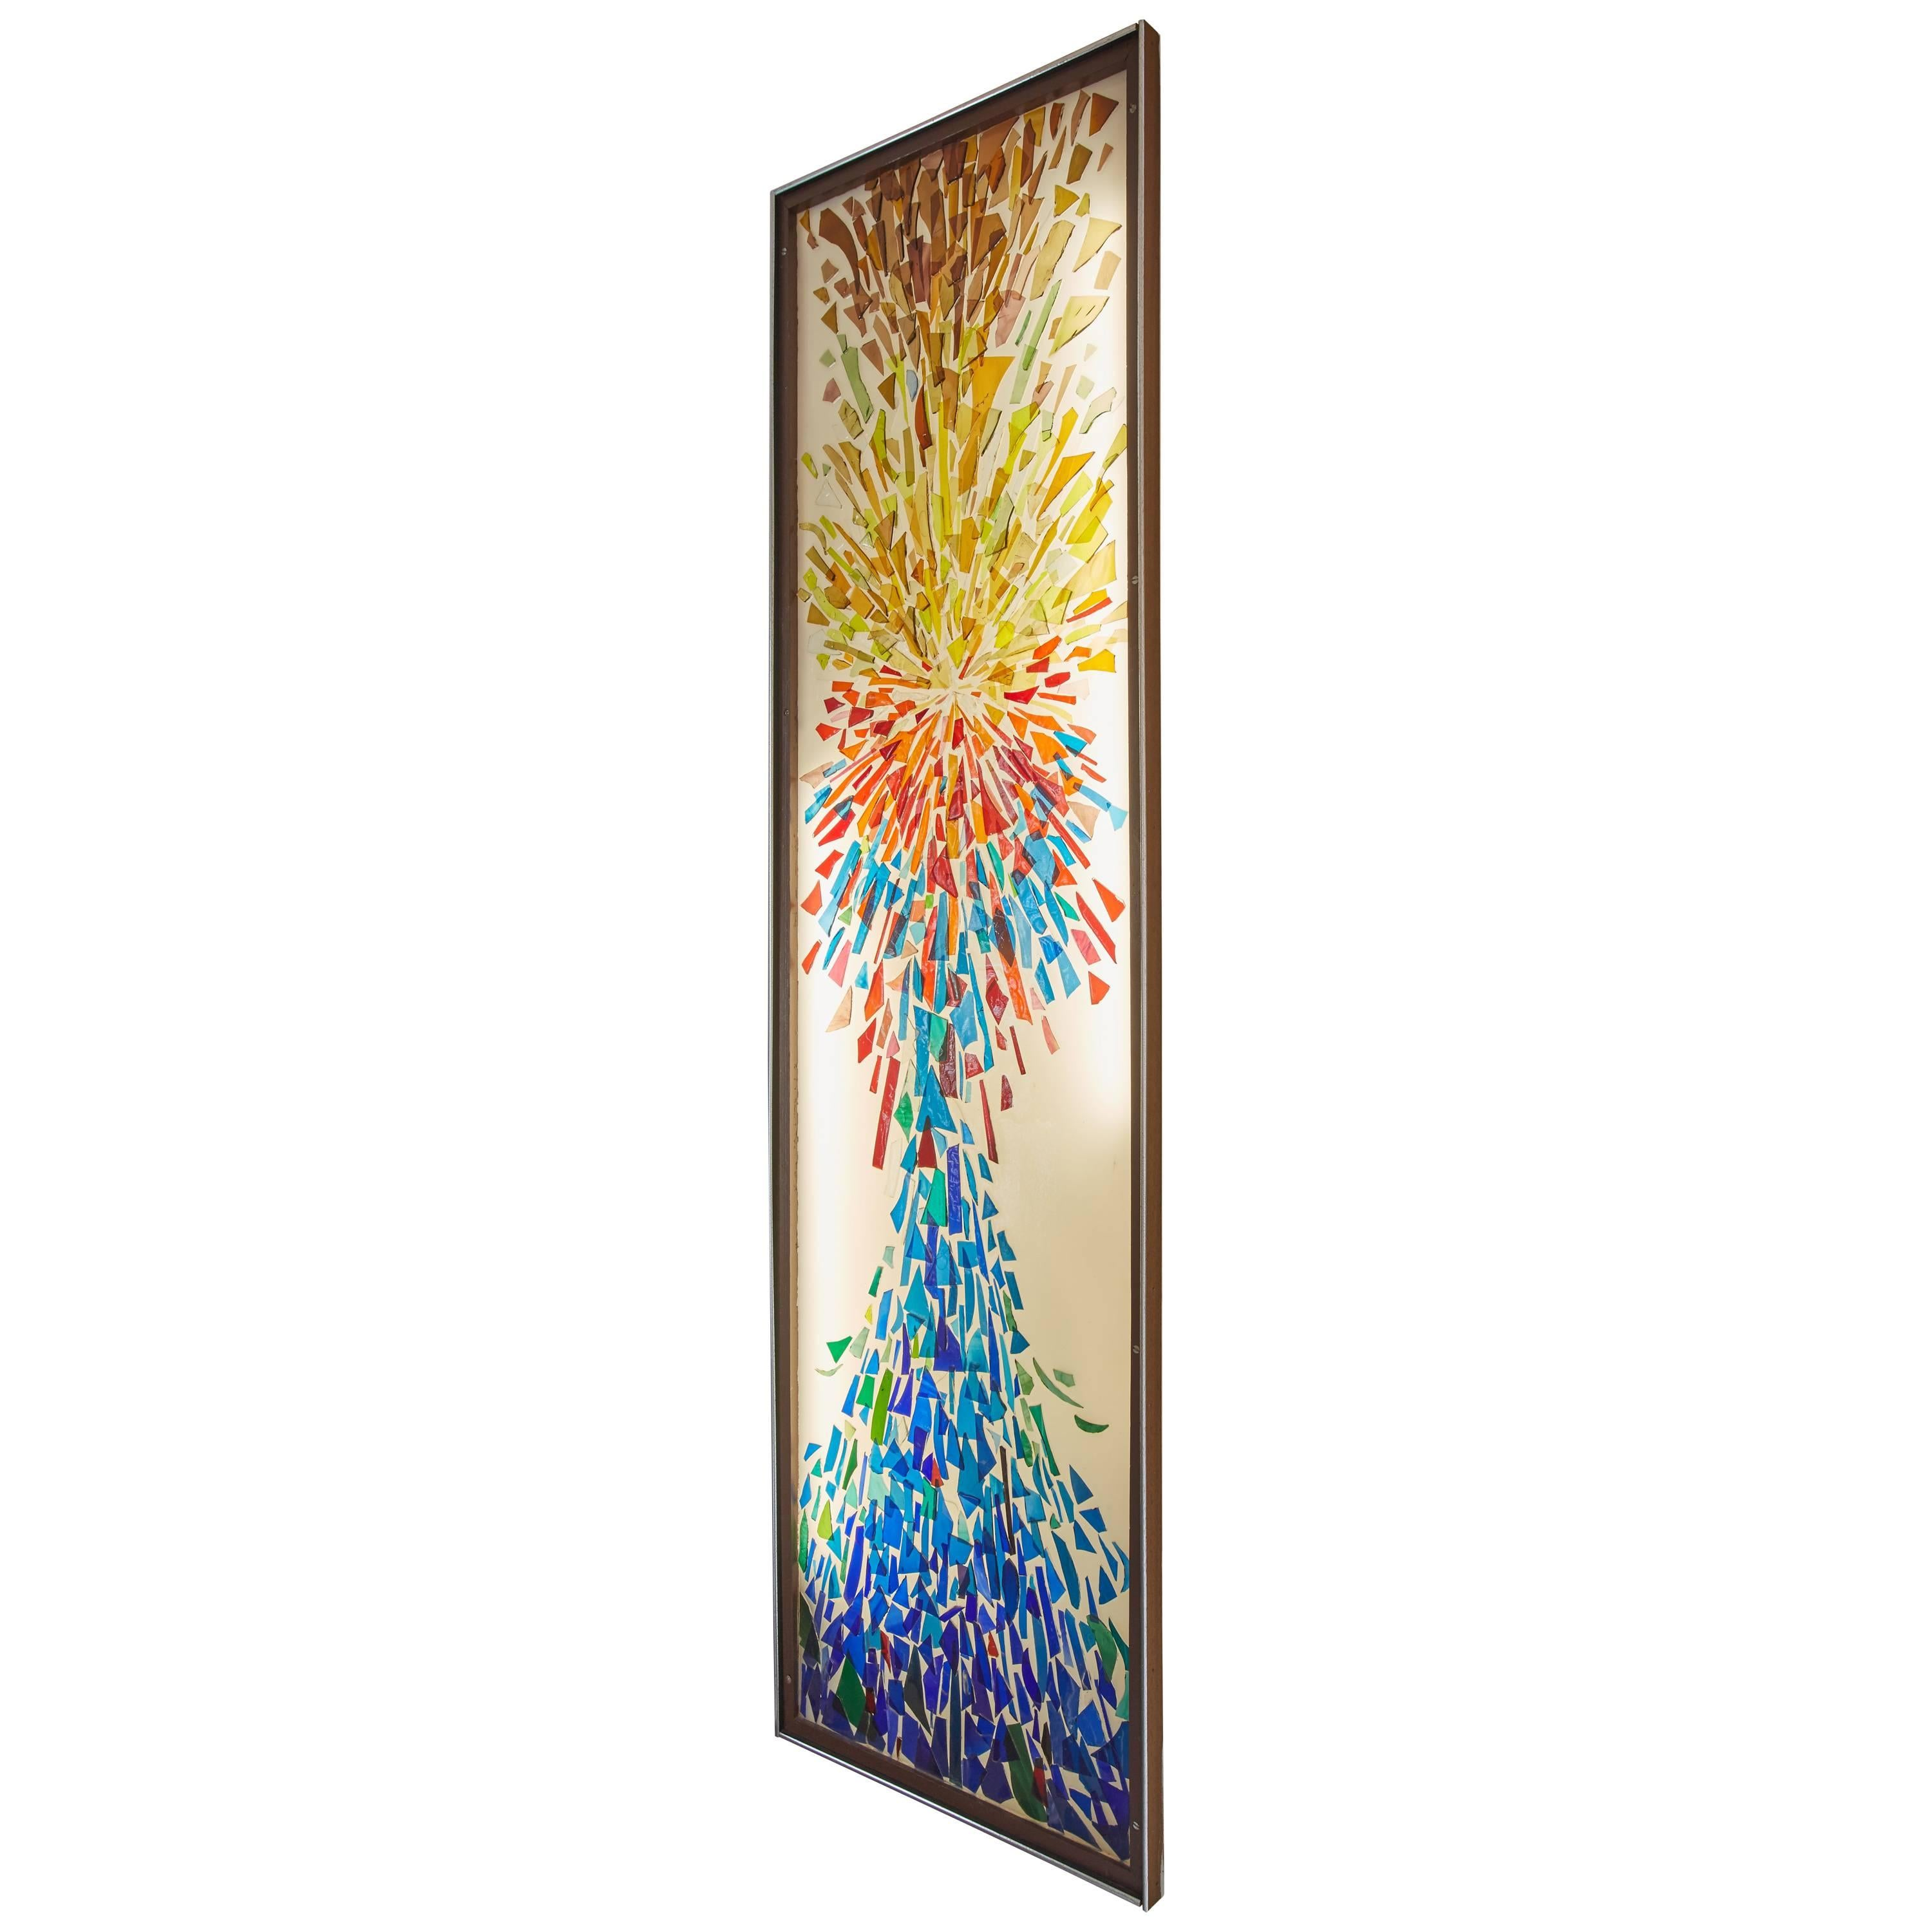 Custom Glass Mosaic Sculpture Wall Hanging With Lighting By Hayes Kelley  For Sale